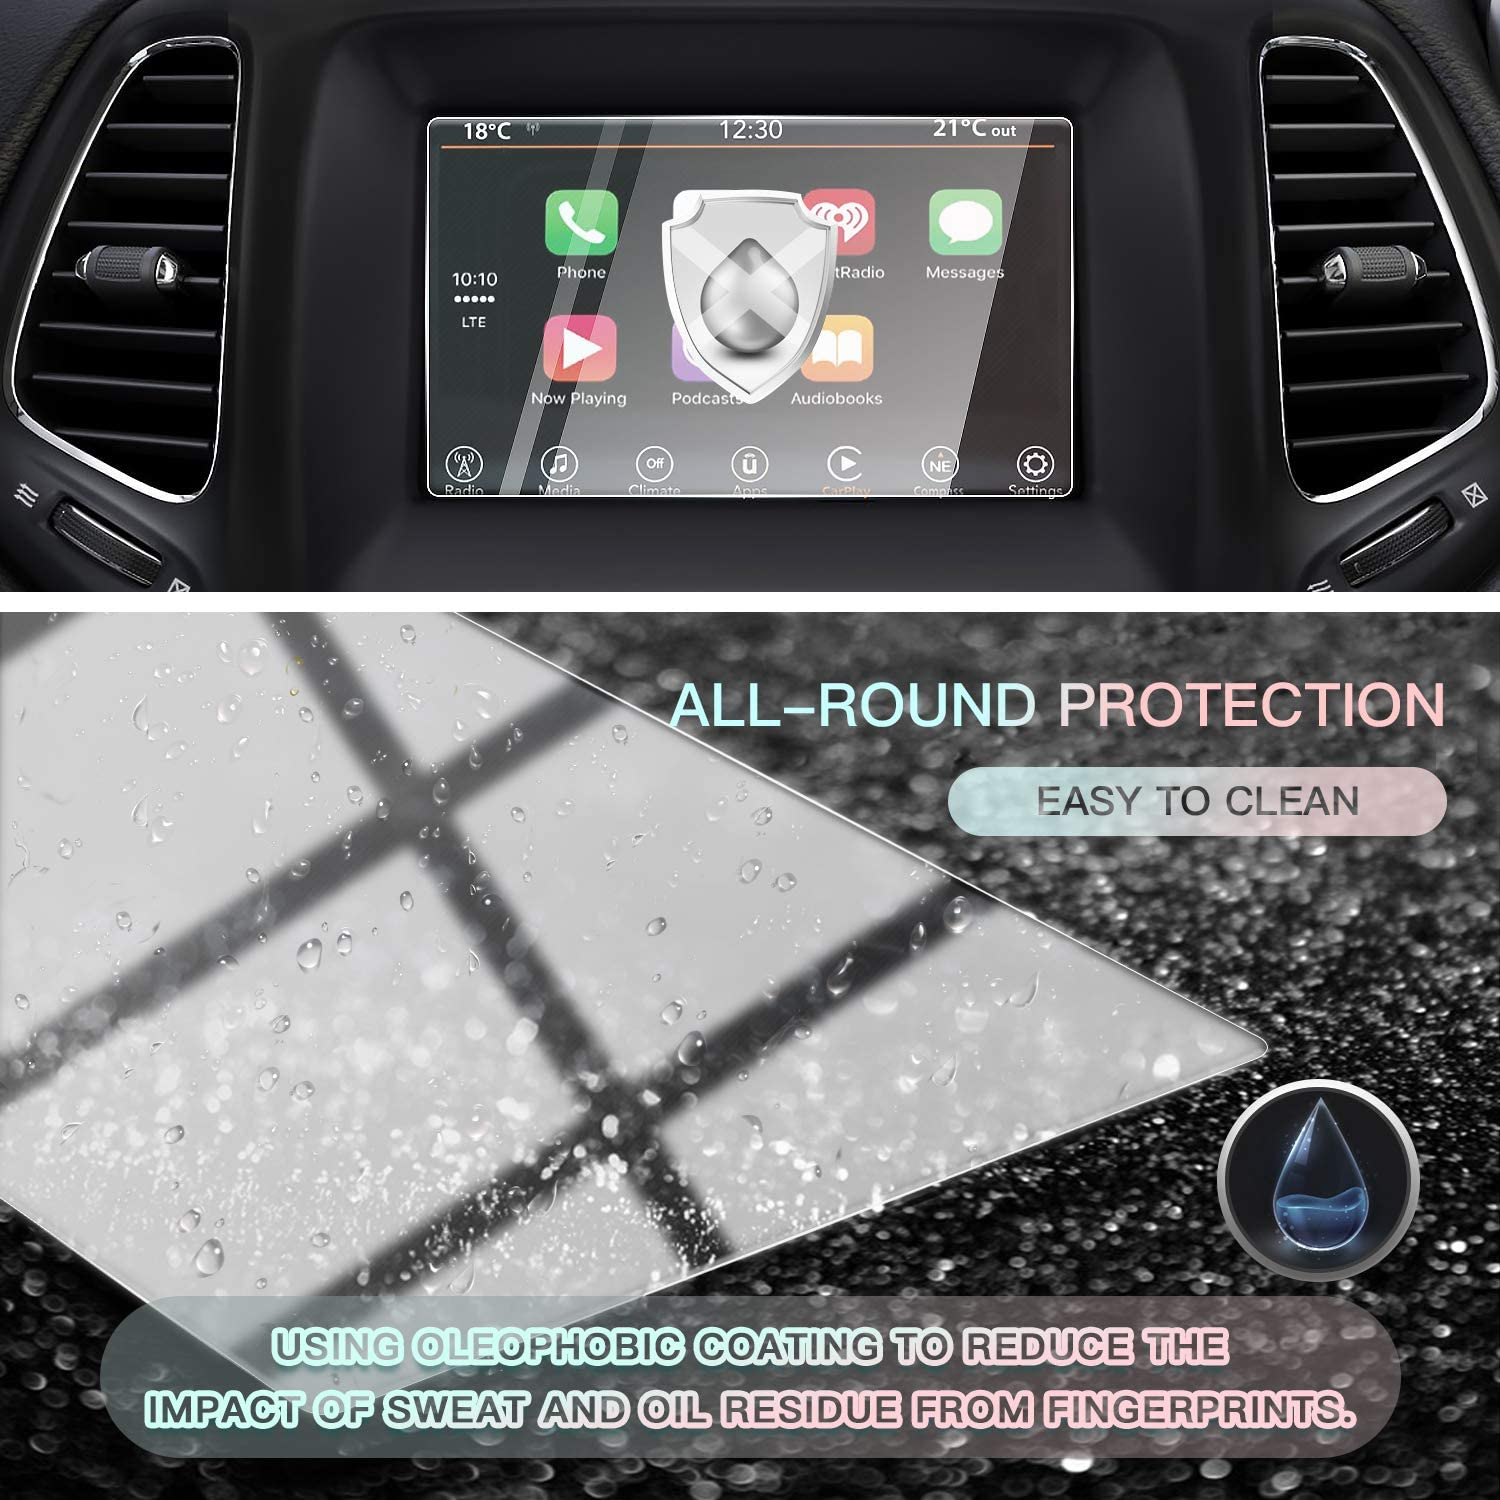 CDEFG Car Screen Protector Center Control Navigation Touch Screen Protector for Compass Uconnect 2017 2018 2019 Upgraded Tempered Glass HD Scratch Resistance 2017-2019 Jeep Compass 8.4-Inch